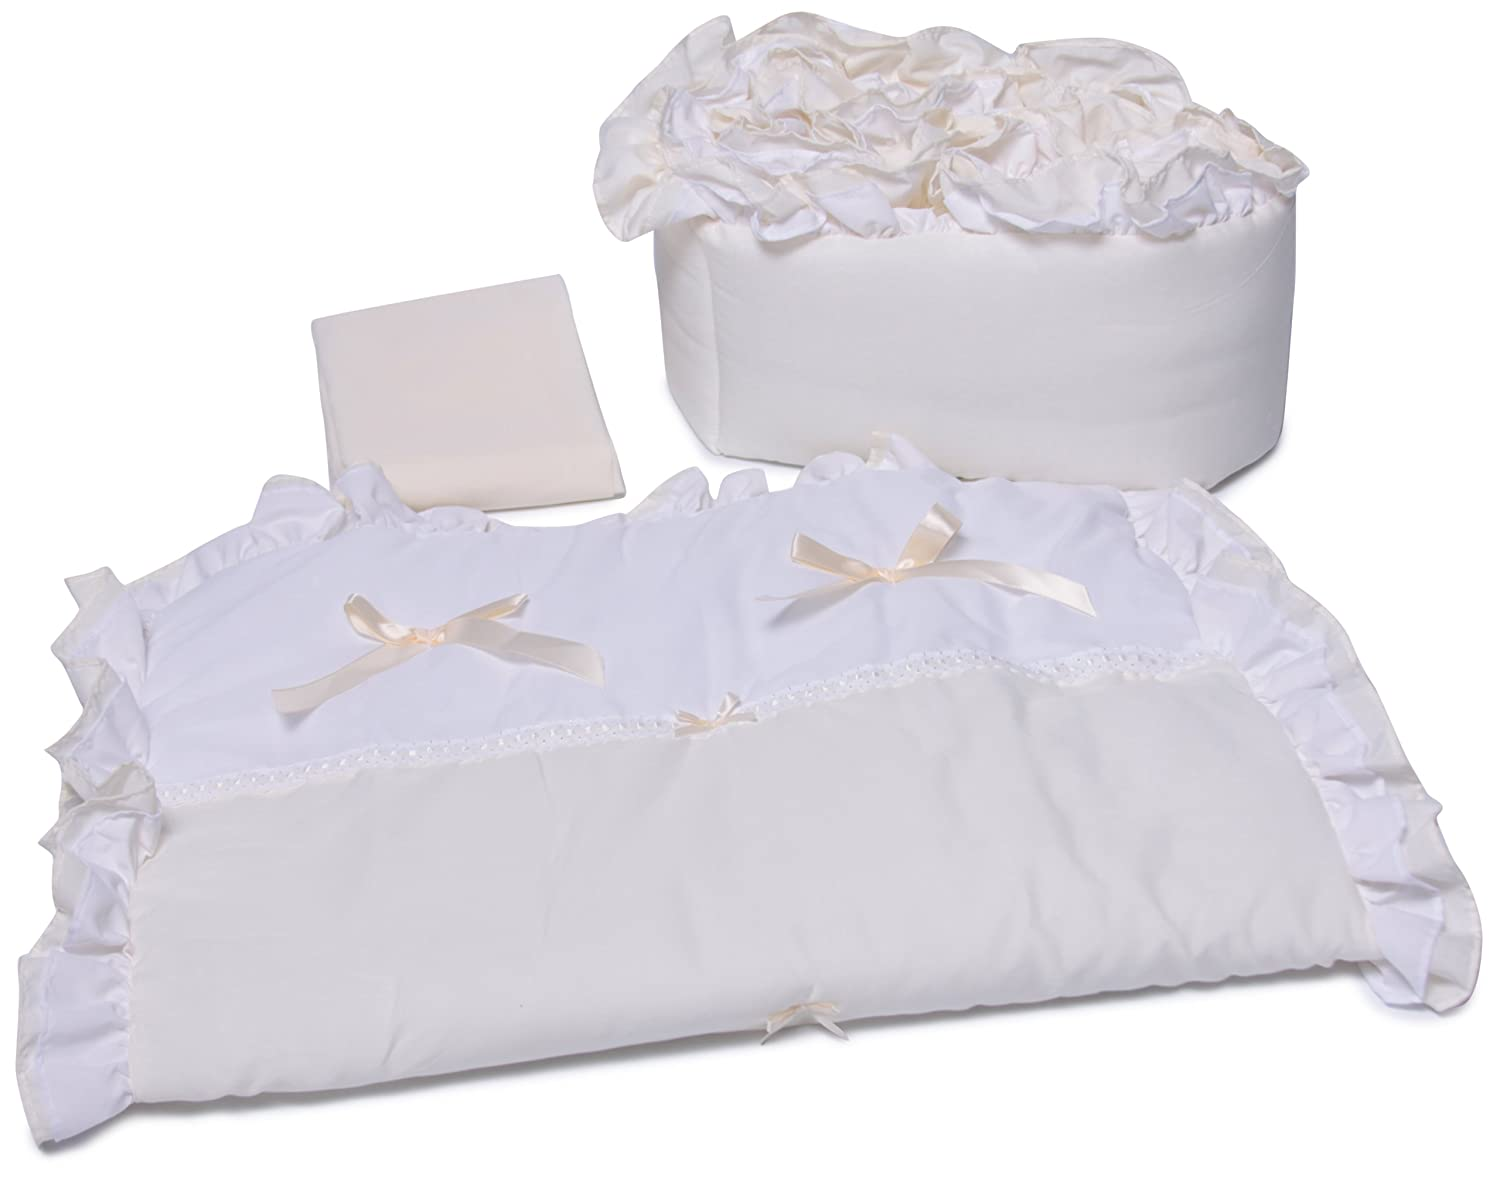 Baby Doll Bedding Regal Cradle Bedding Set, White 530cr36